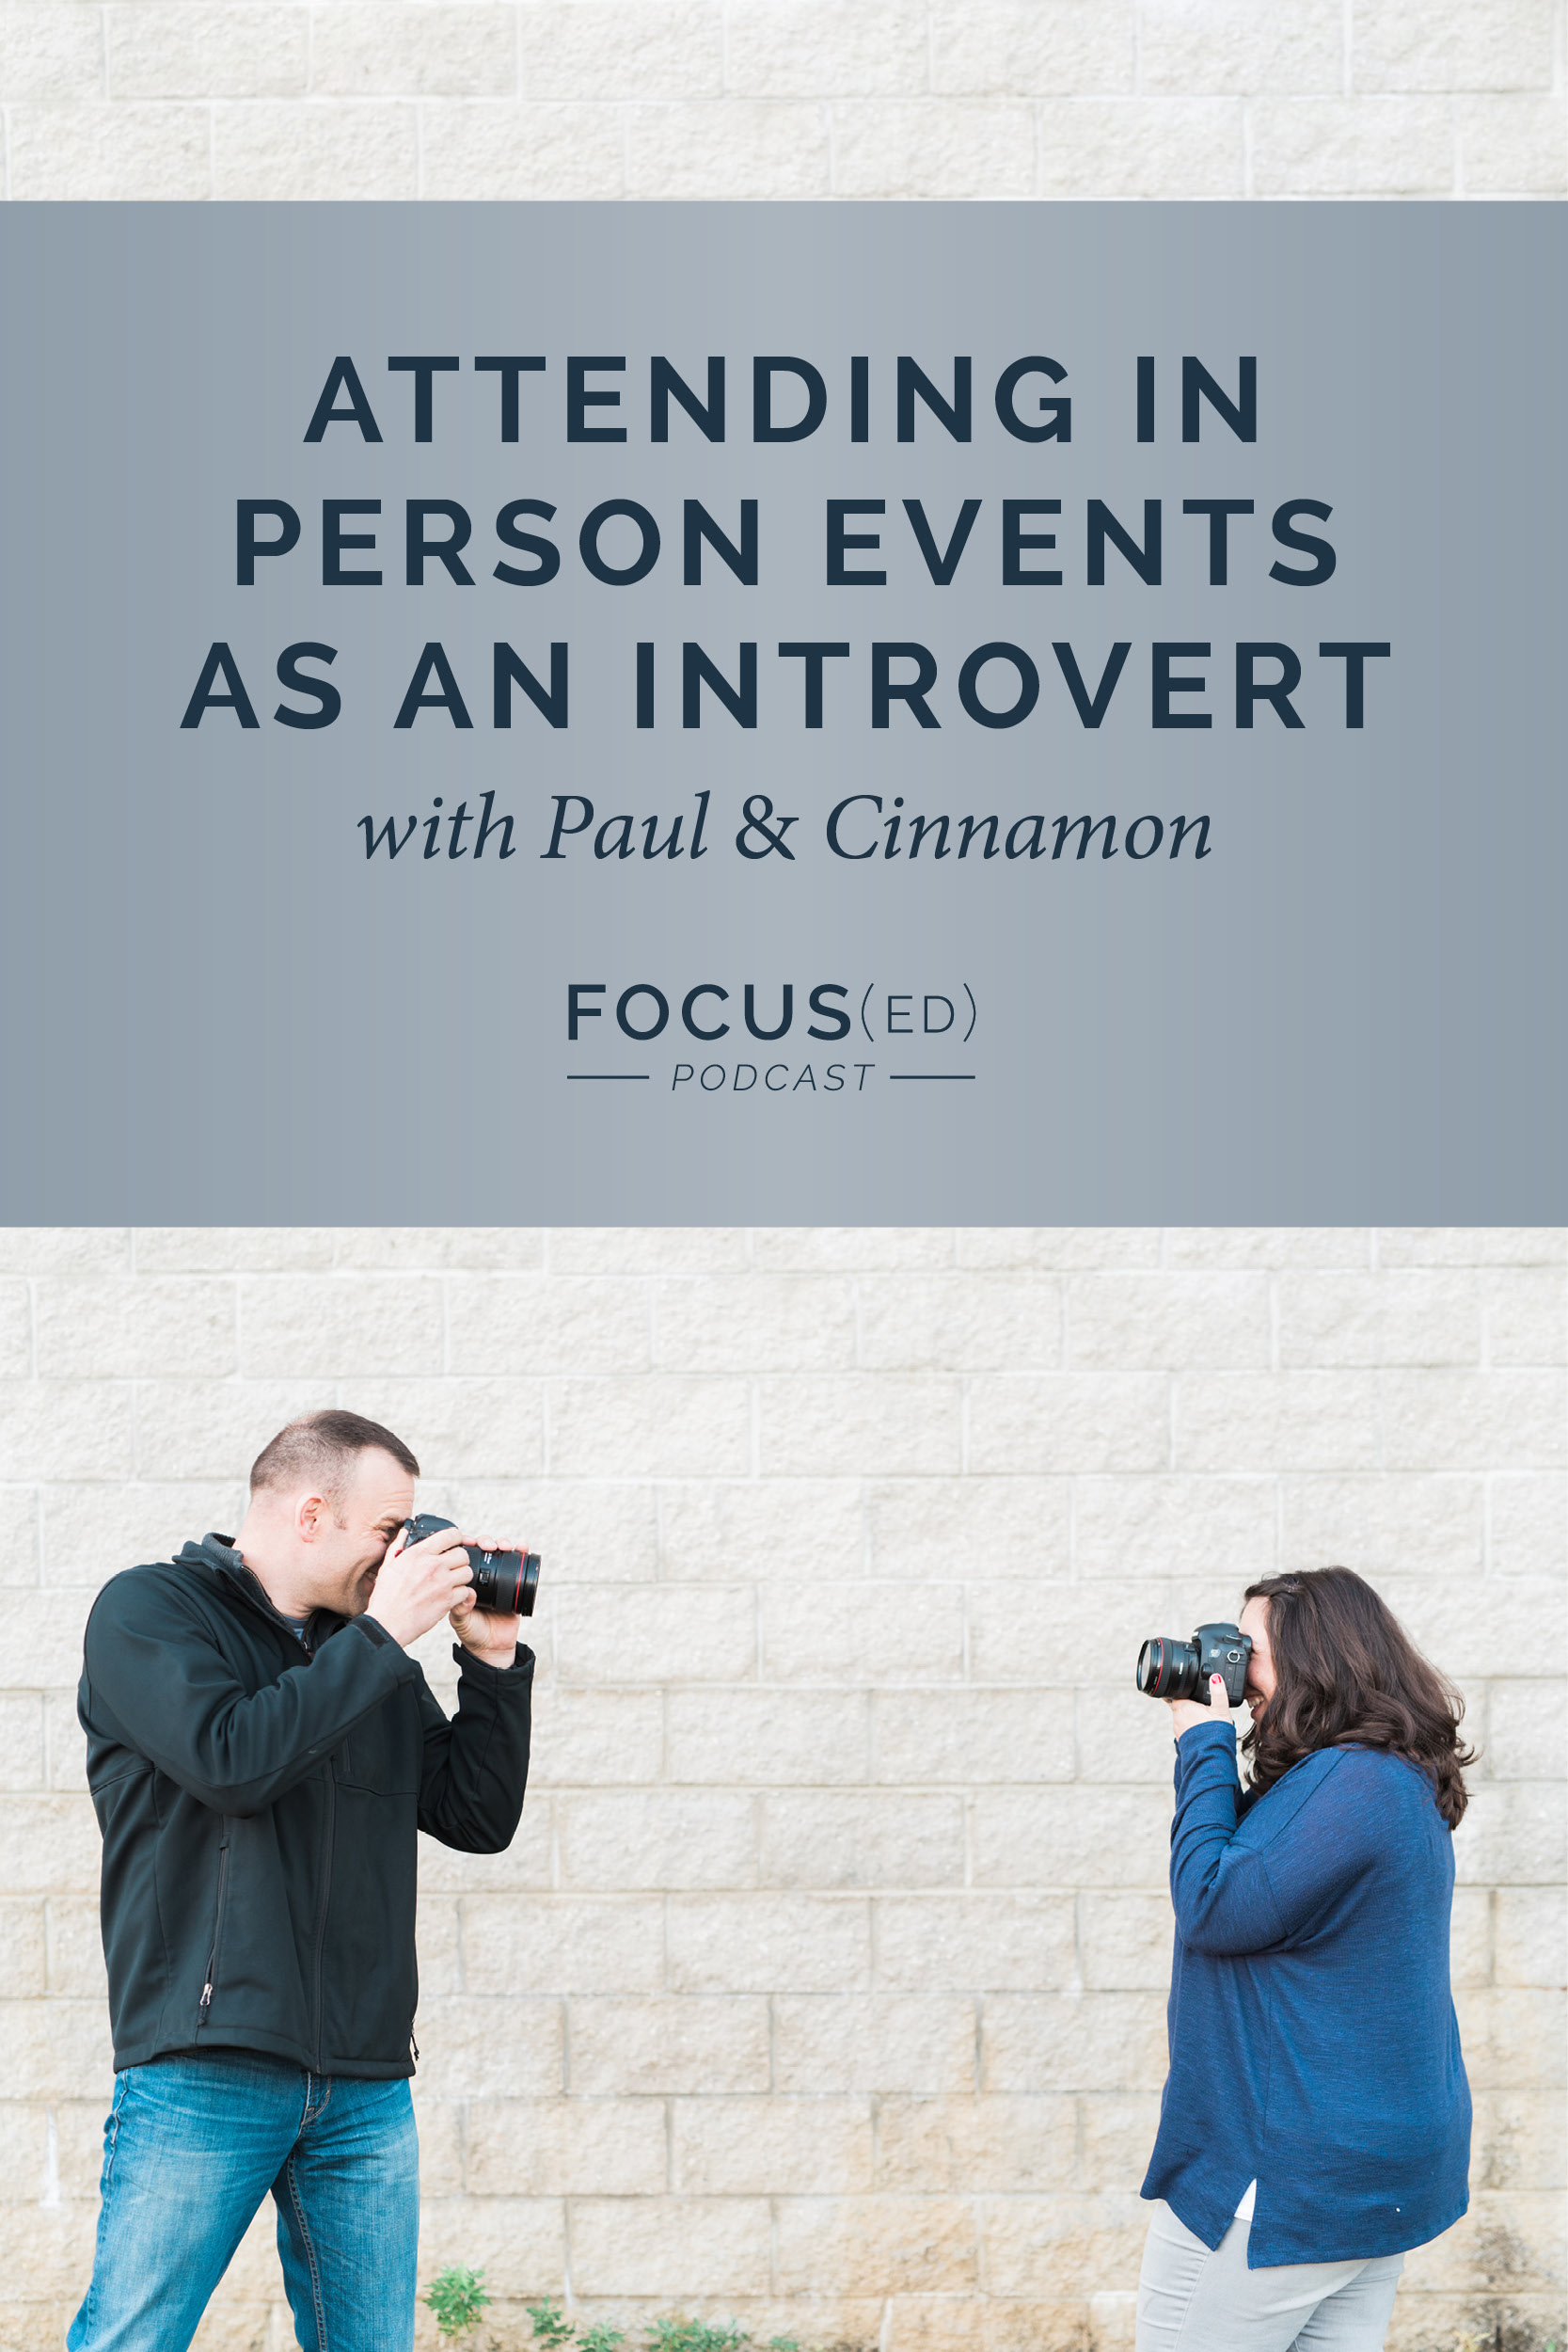 It is okay for you to need time alone at an event | Focus(ed) Podcast 059